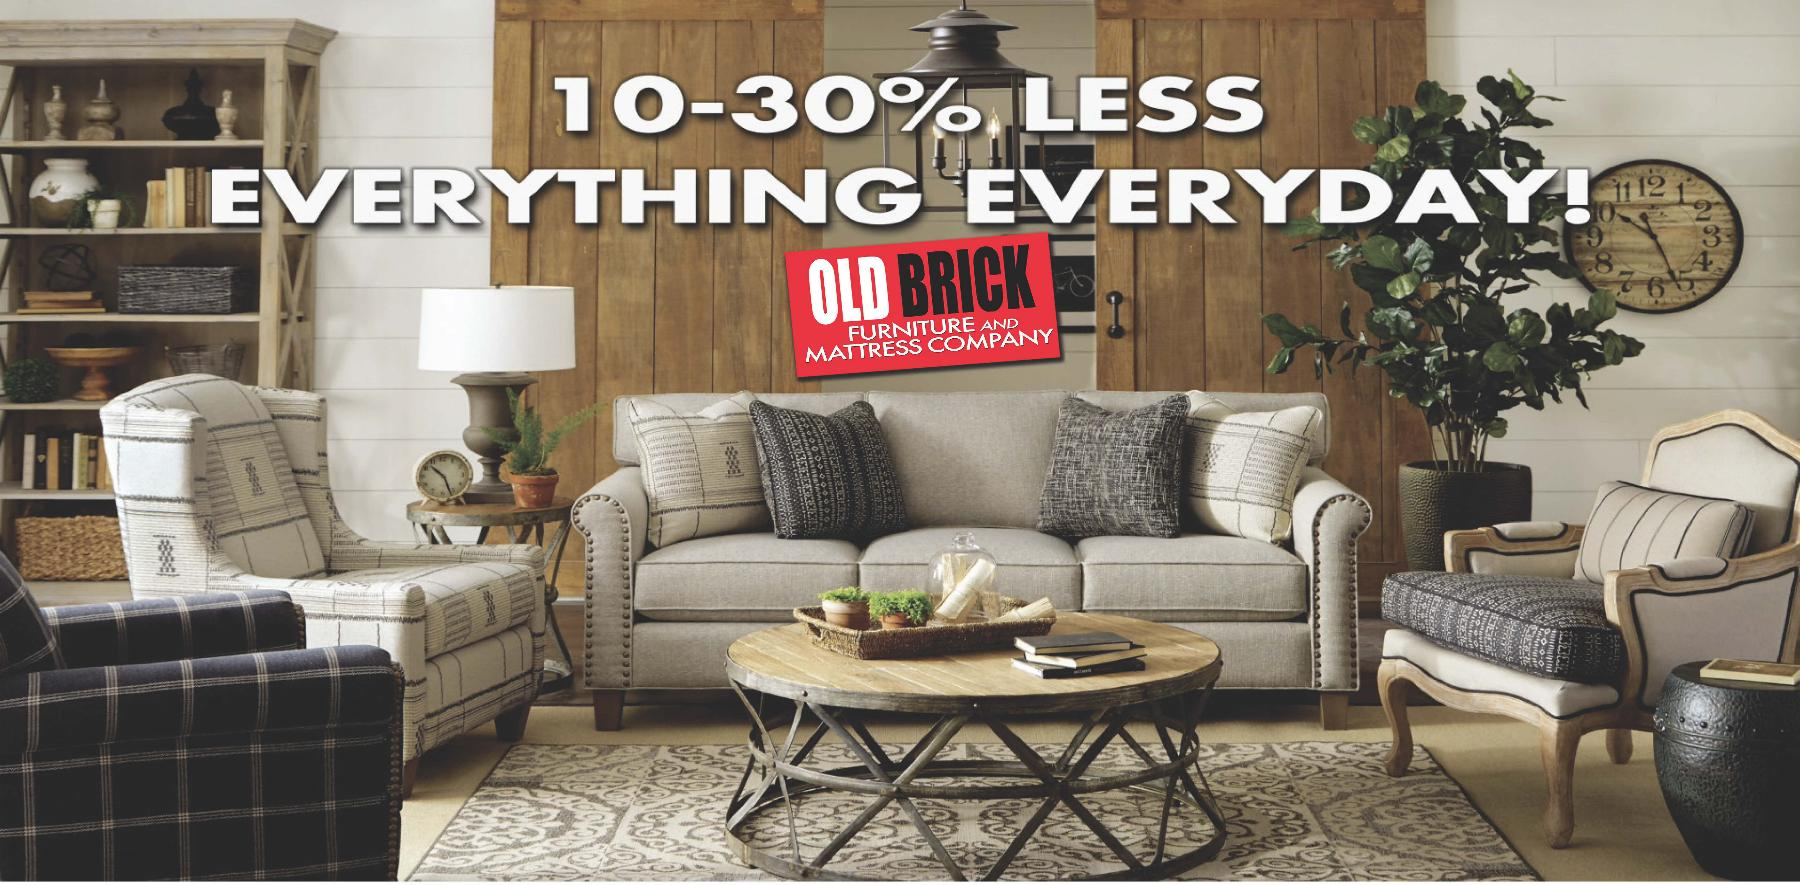 10-30% off everyday banner